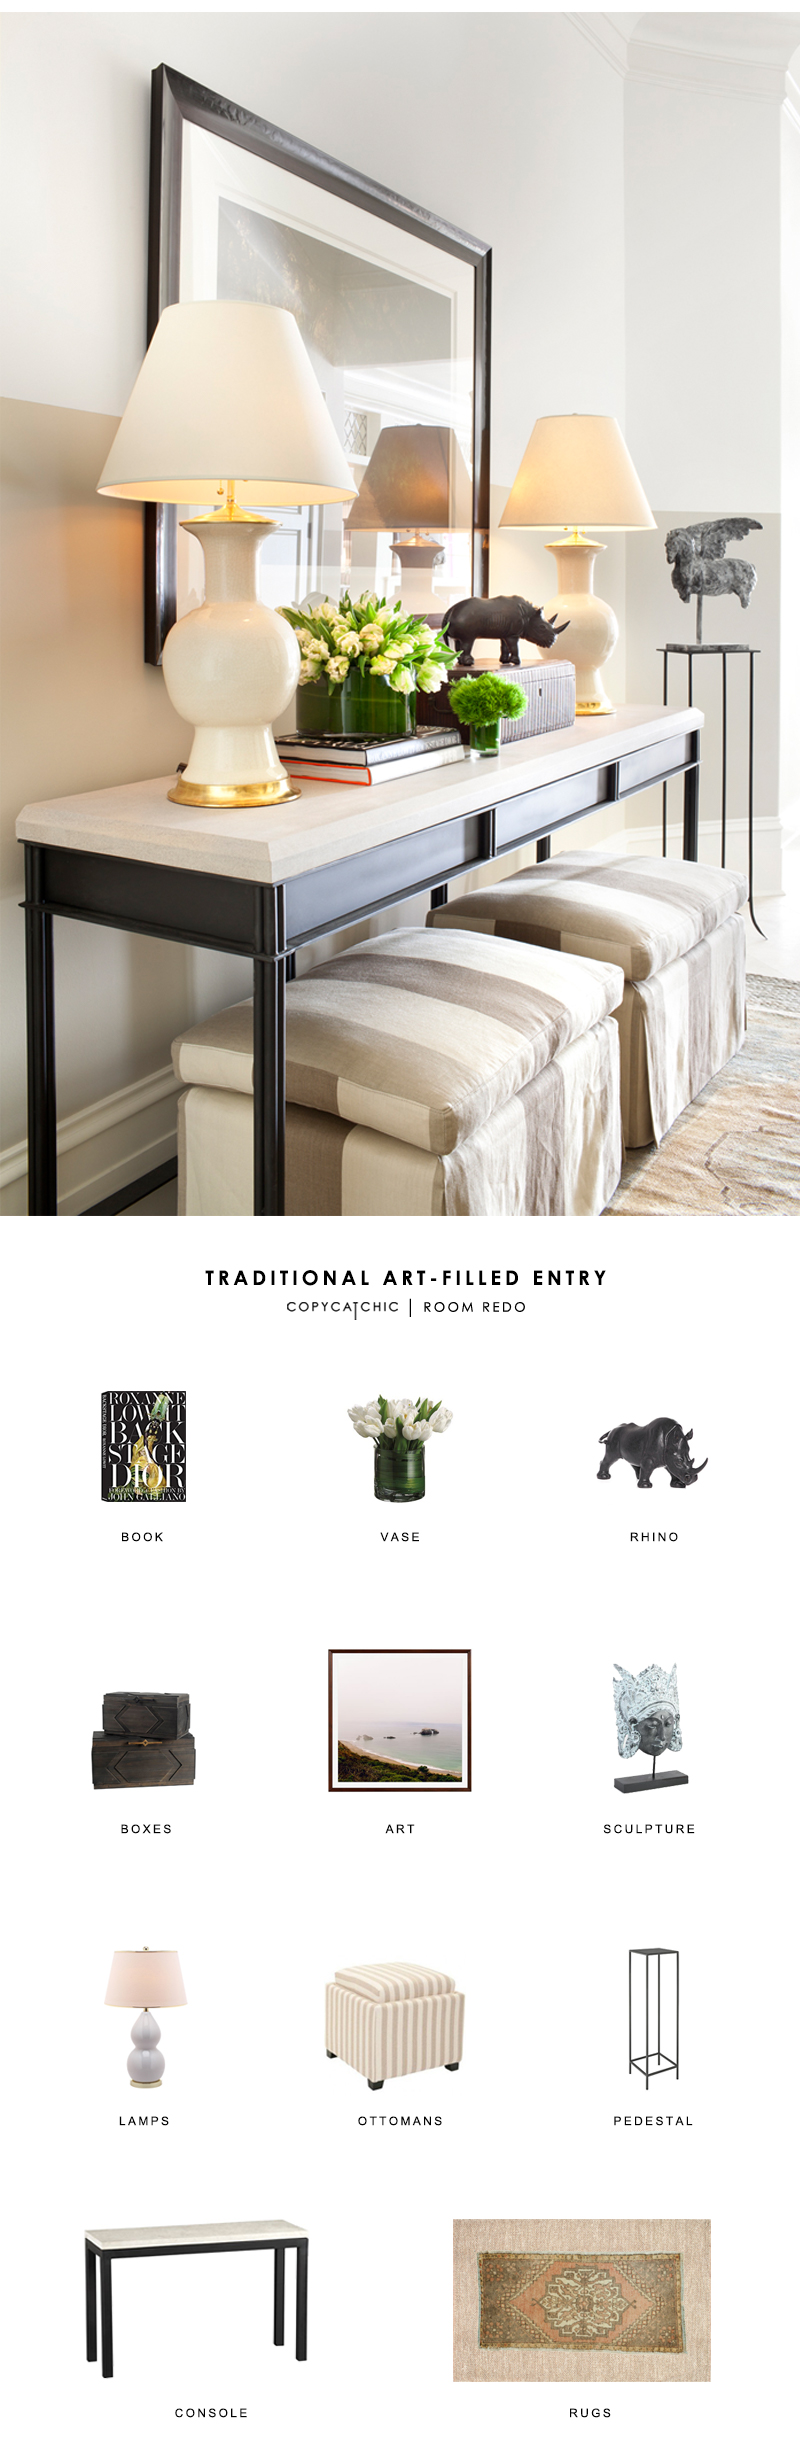 Traditional entryway by Holt Interiors gets a budget makeover by copycatchic luxe living for less budget home decor and design looks for less